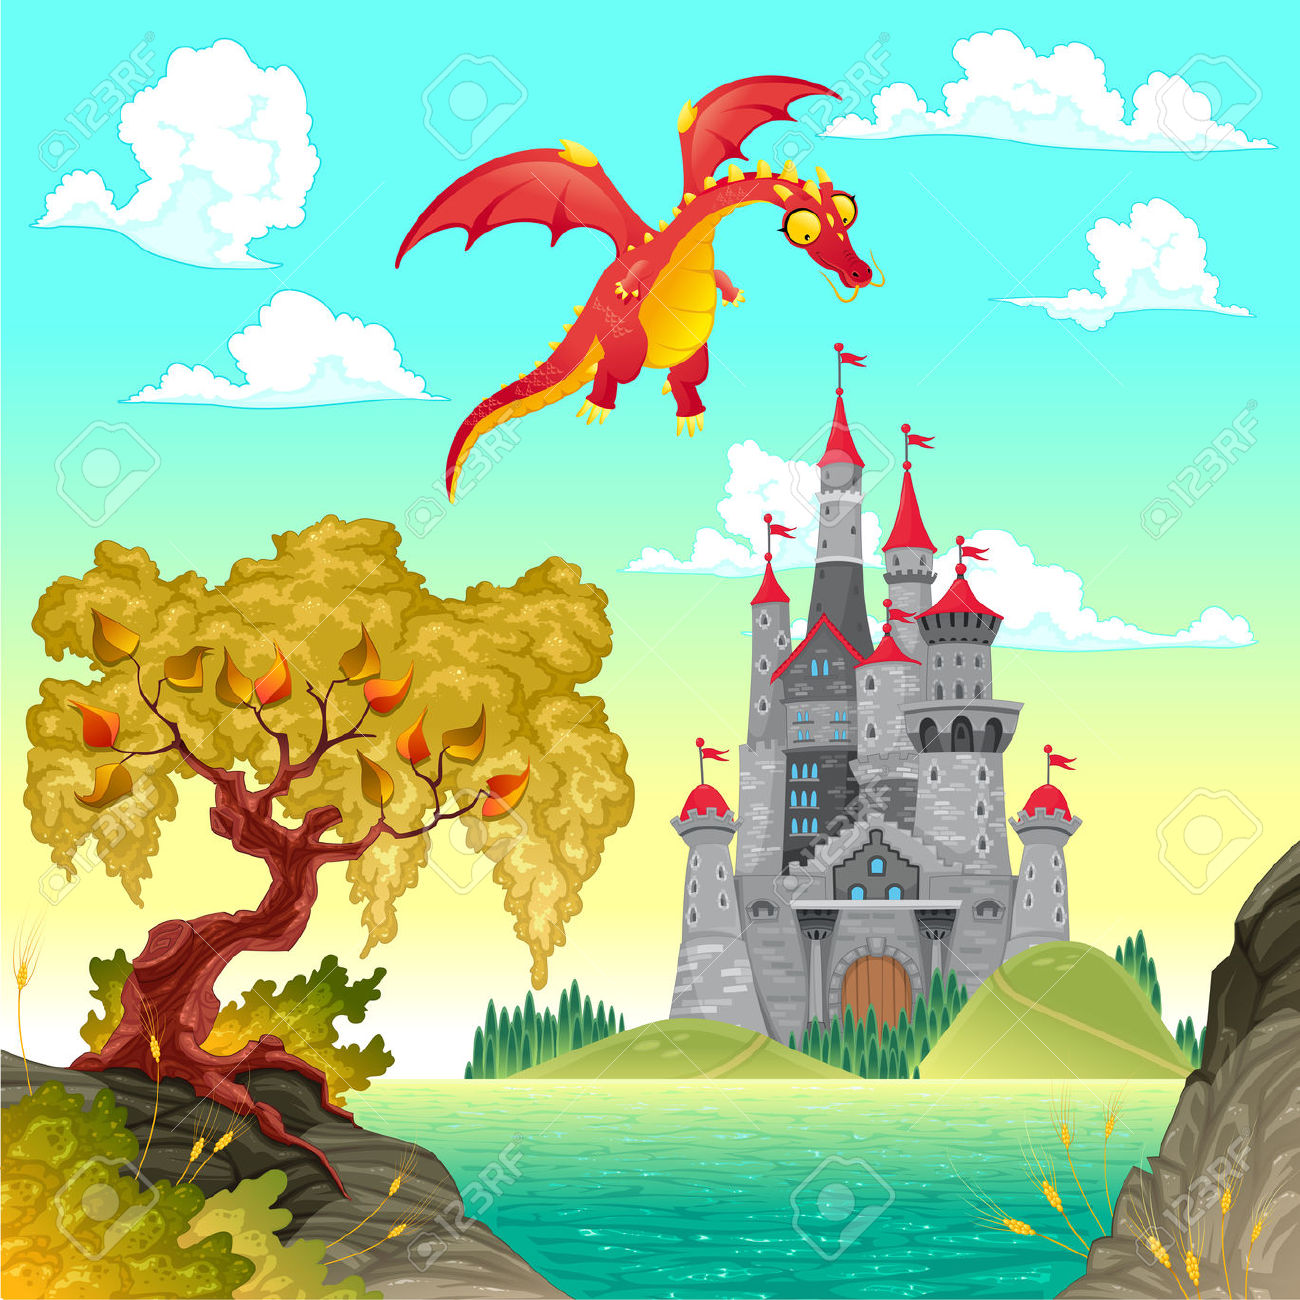 Fantasy world clipart.